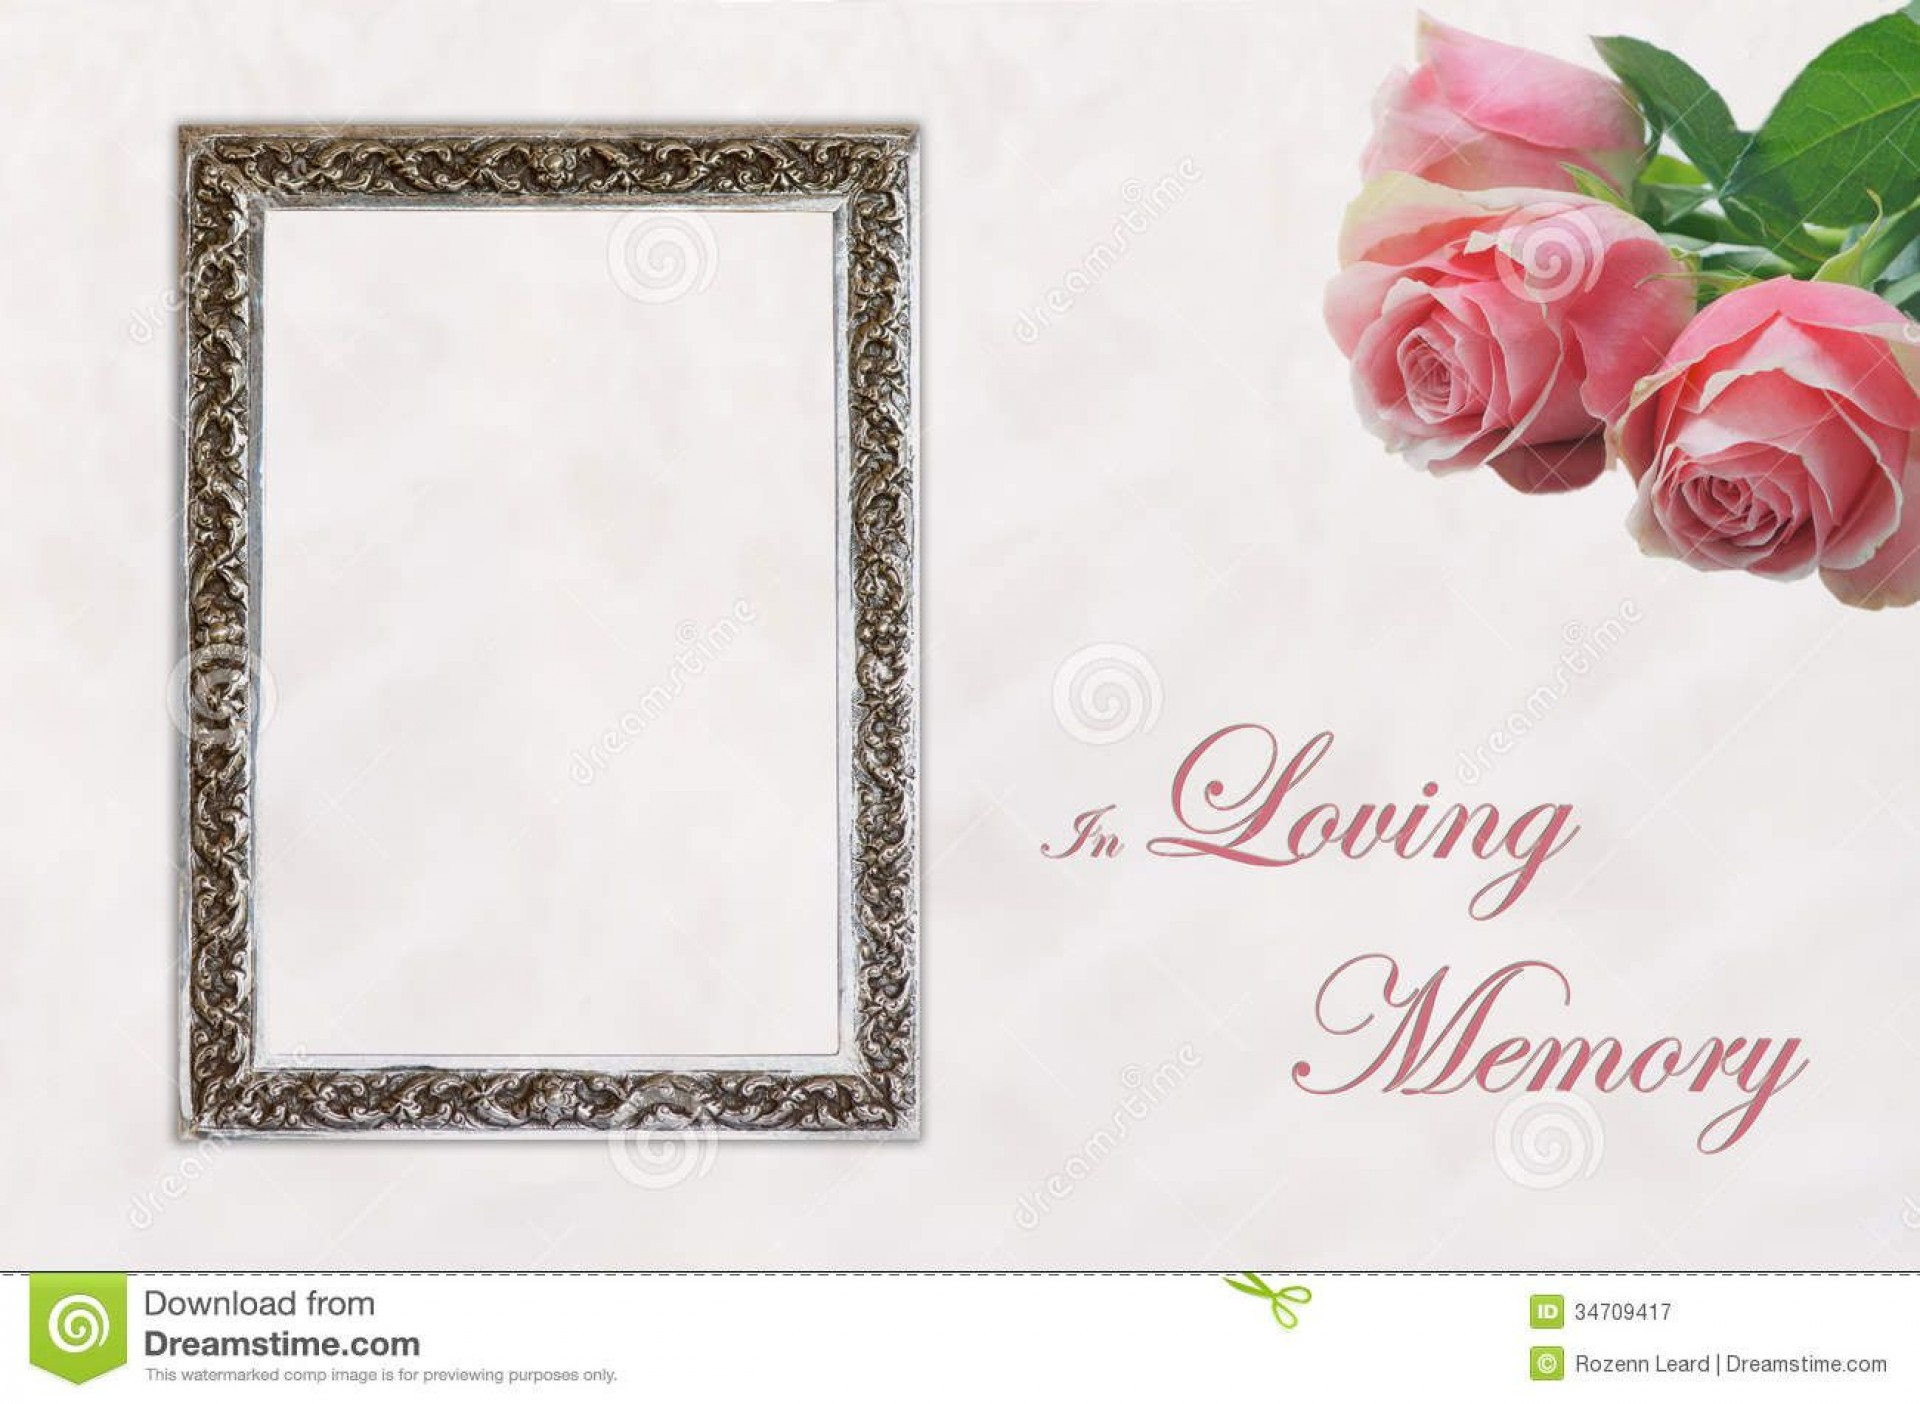 004 Dreaded In Loving Memory Template Word Concept 1920